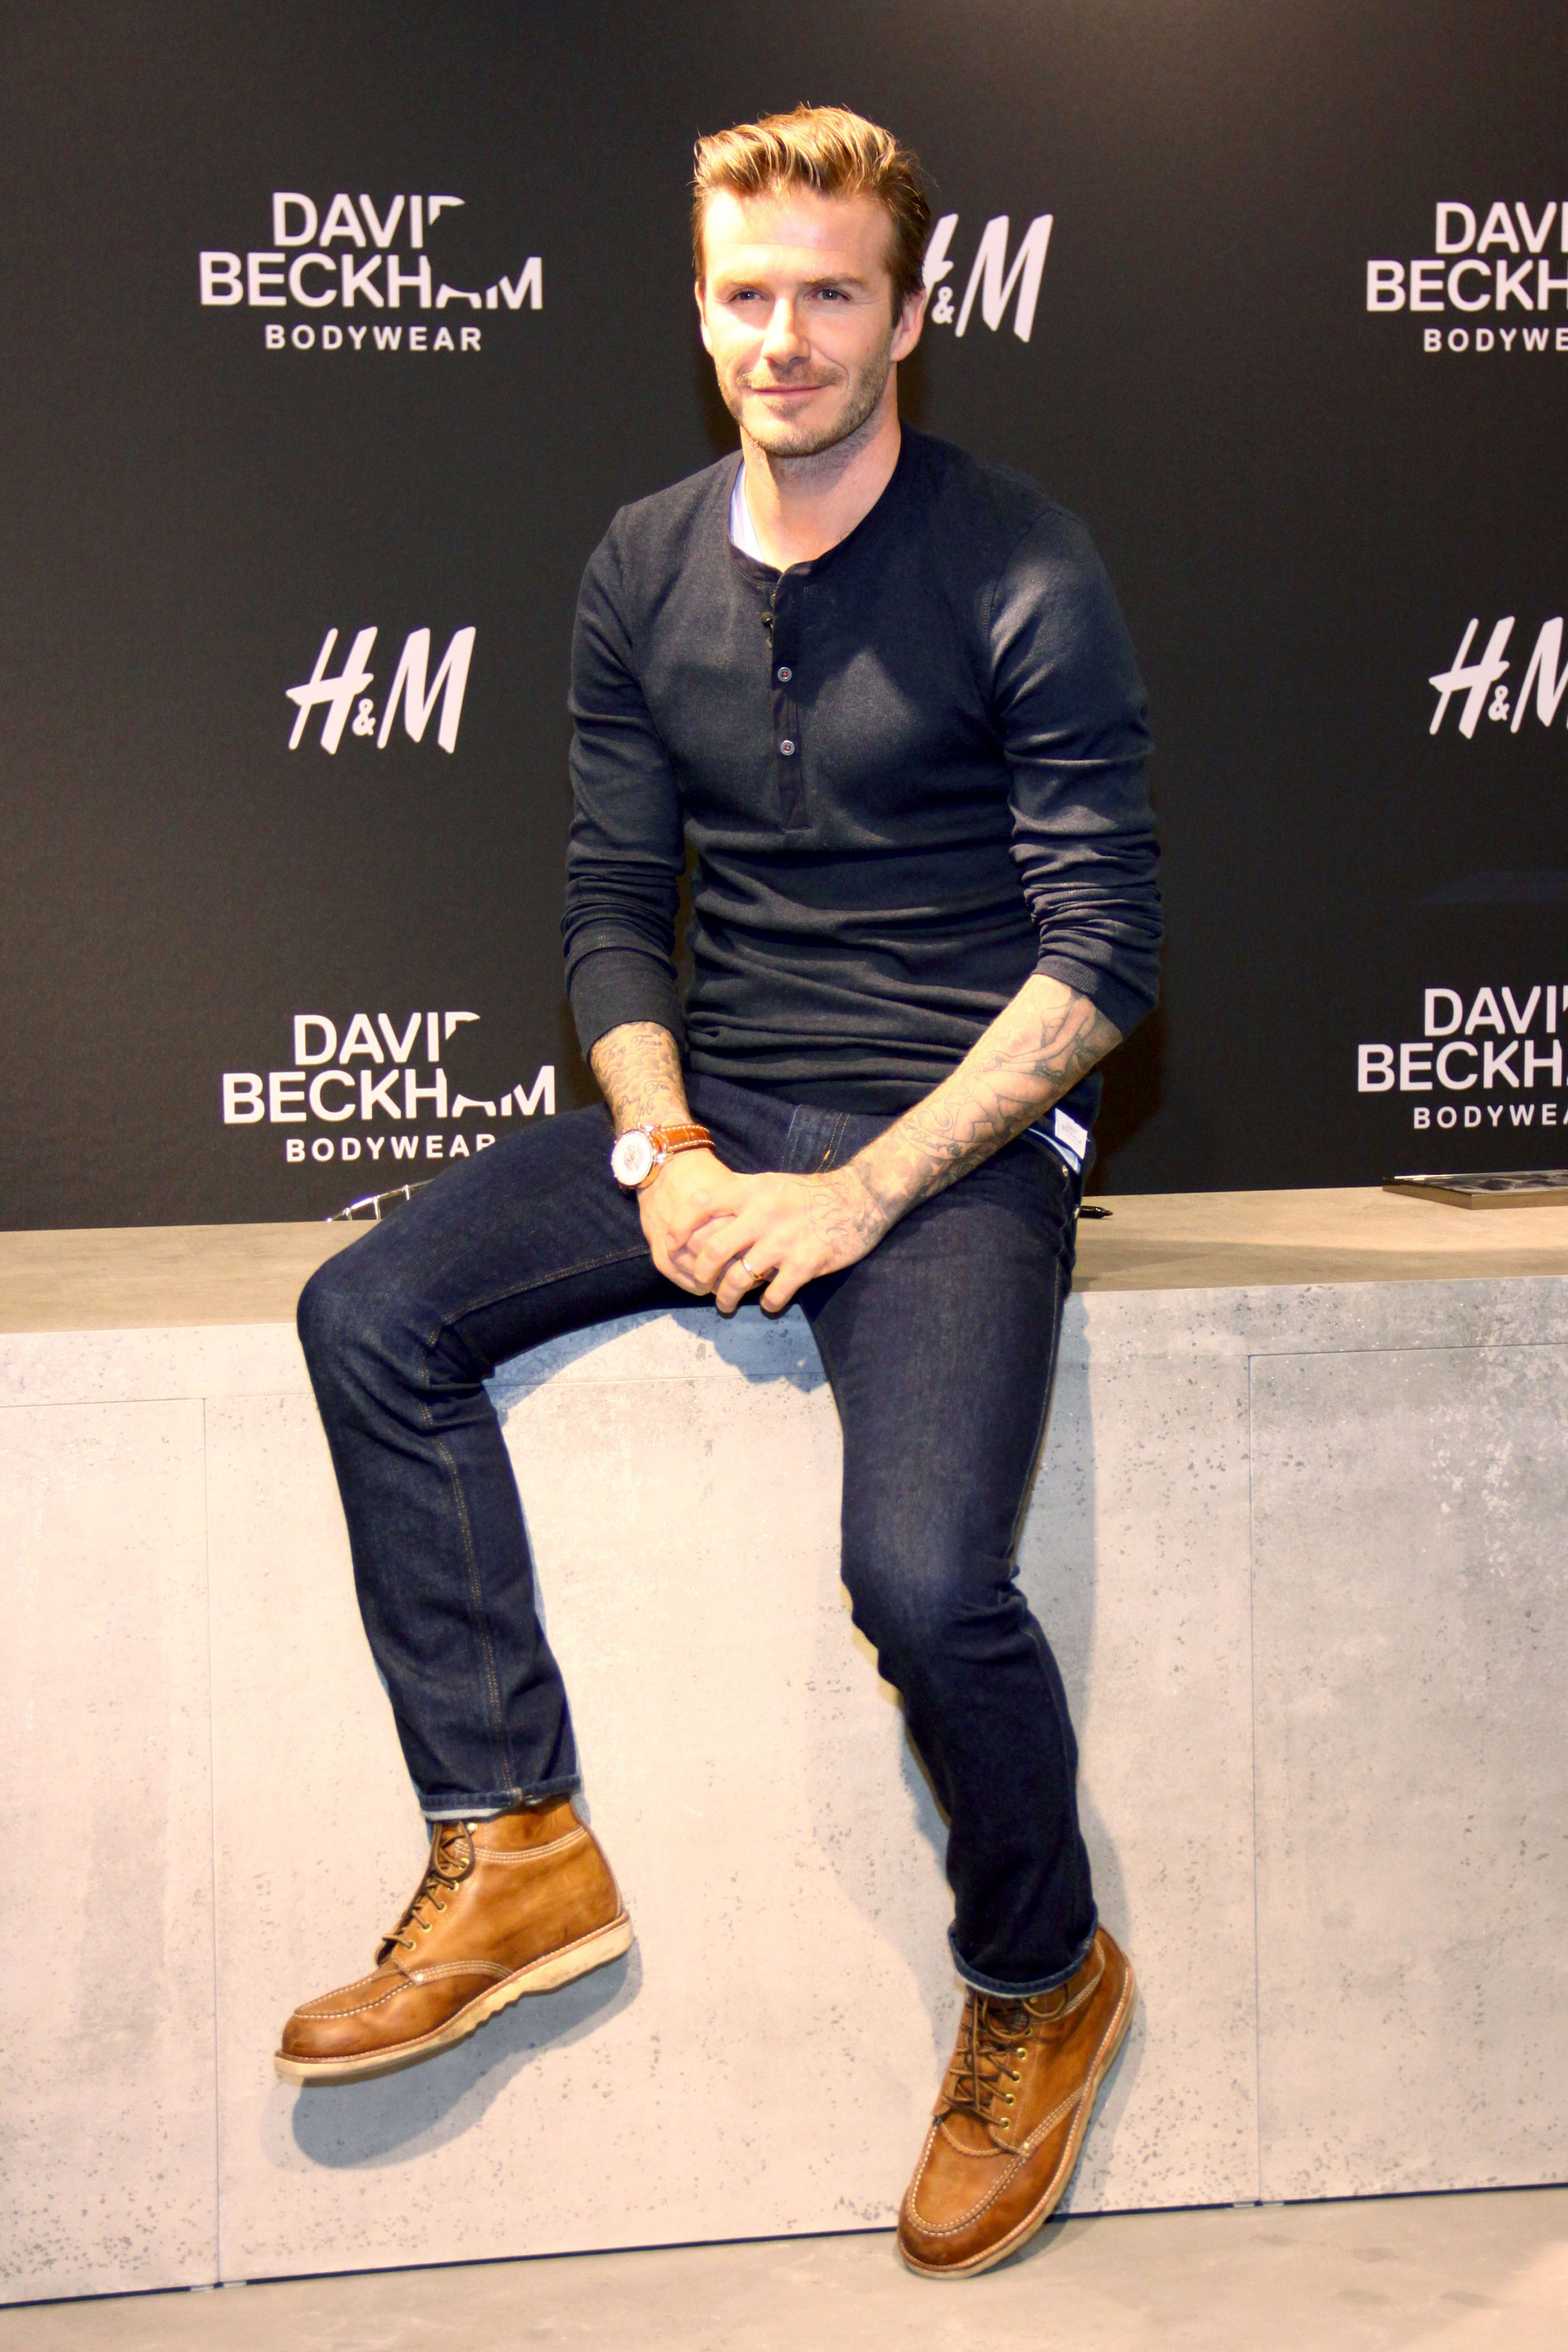 David Beckham is the model author at the signing of his